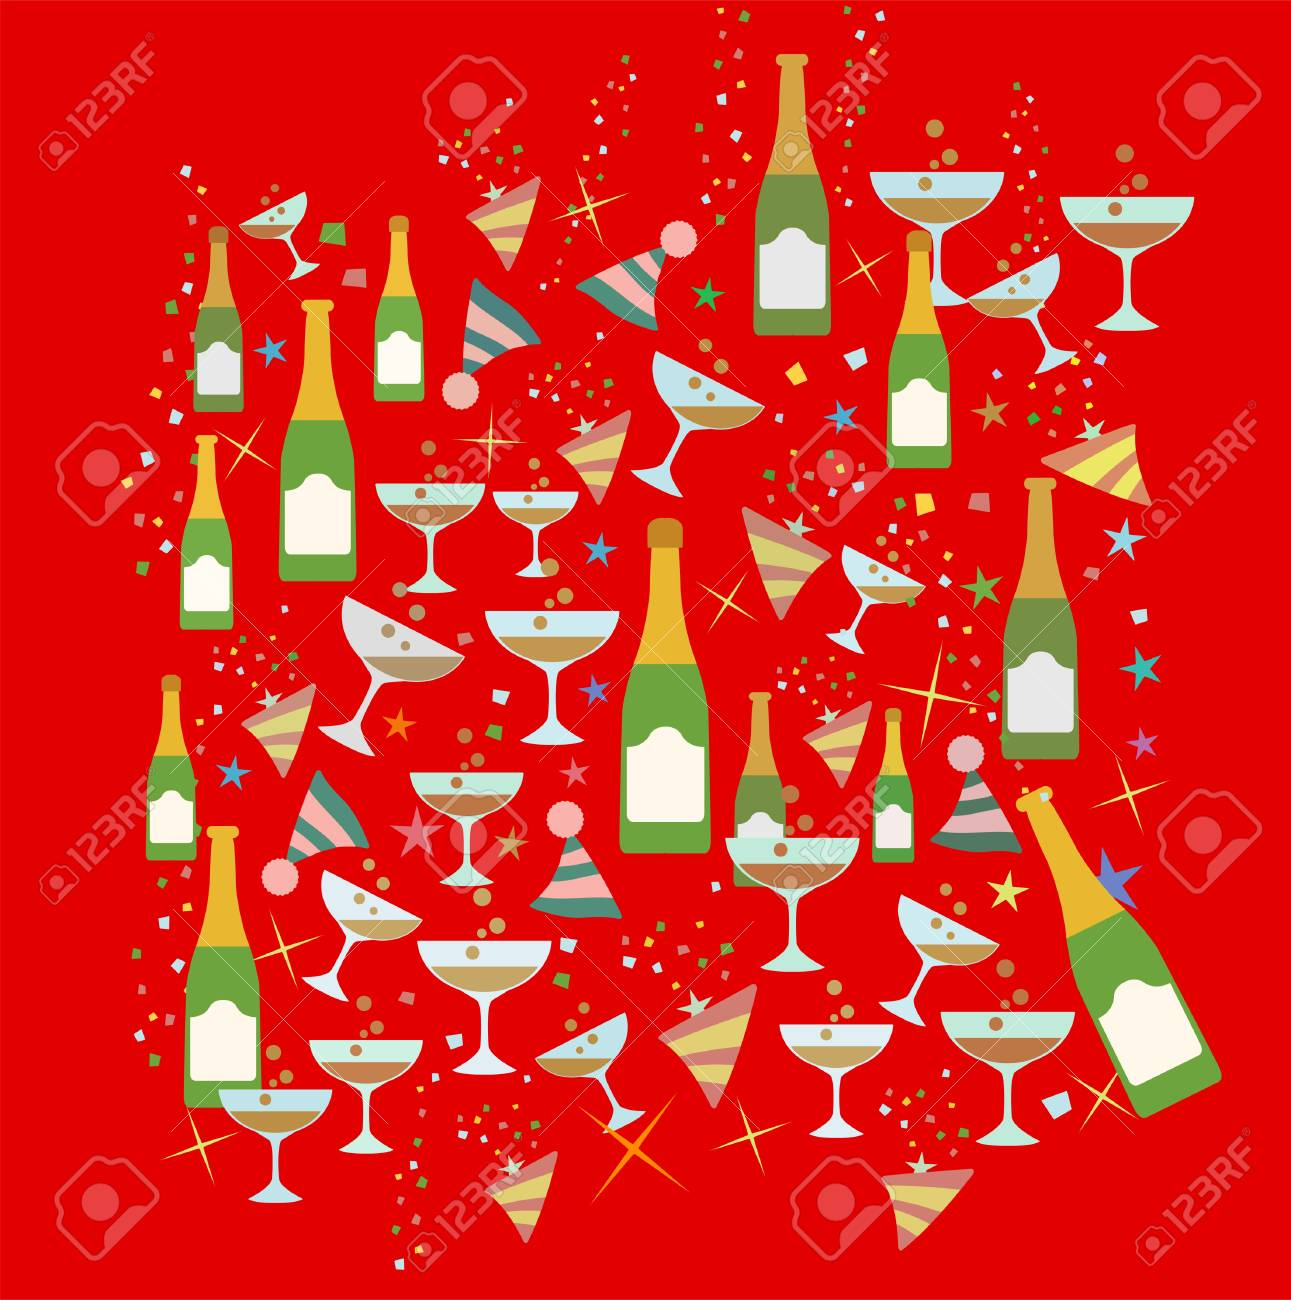 celebration toast christmas and new year party theme pattern theme illustration stock illustration 99006470